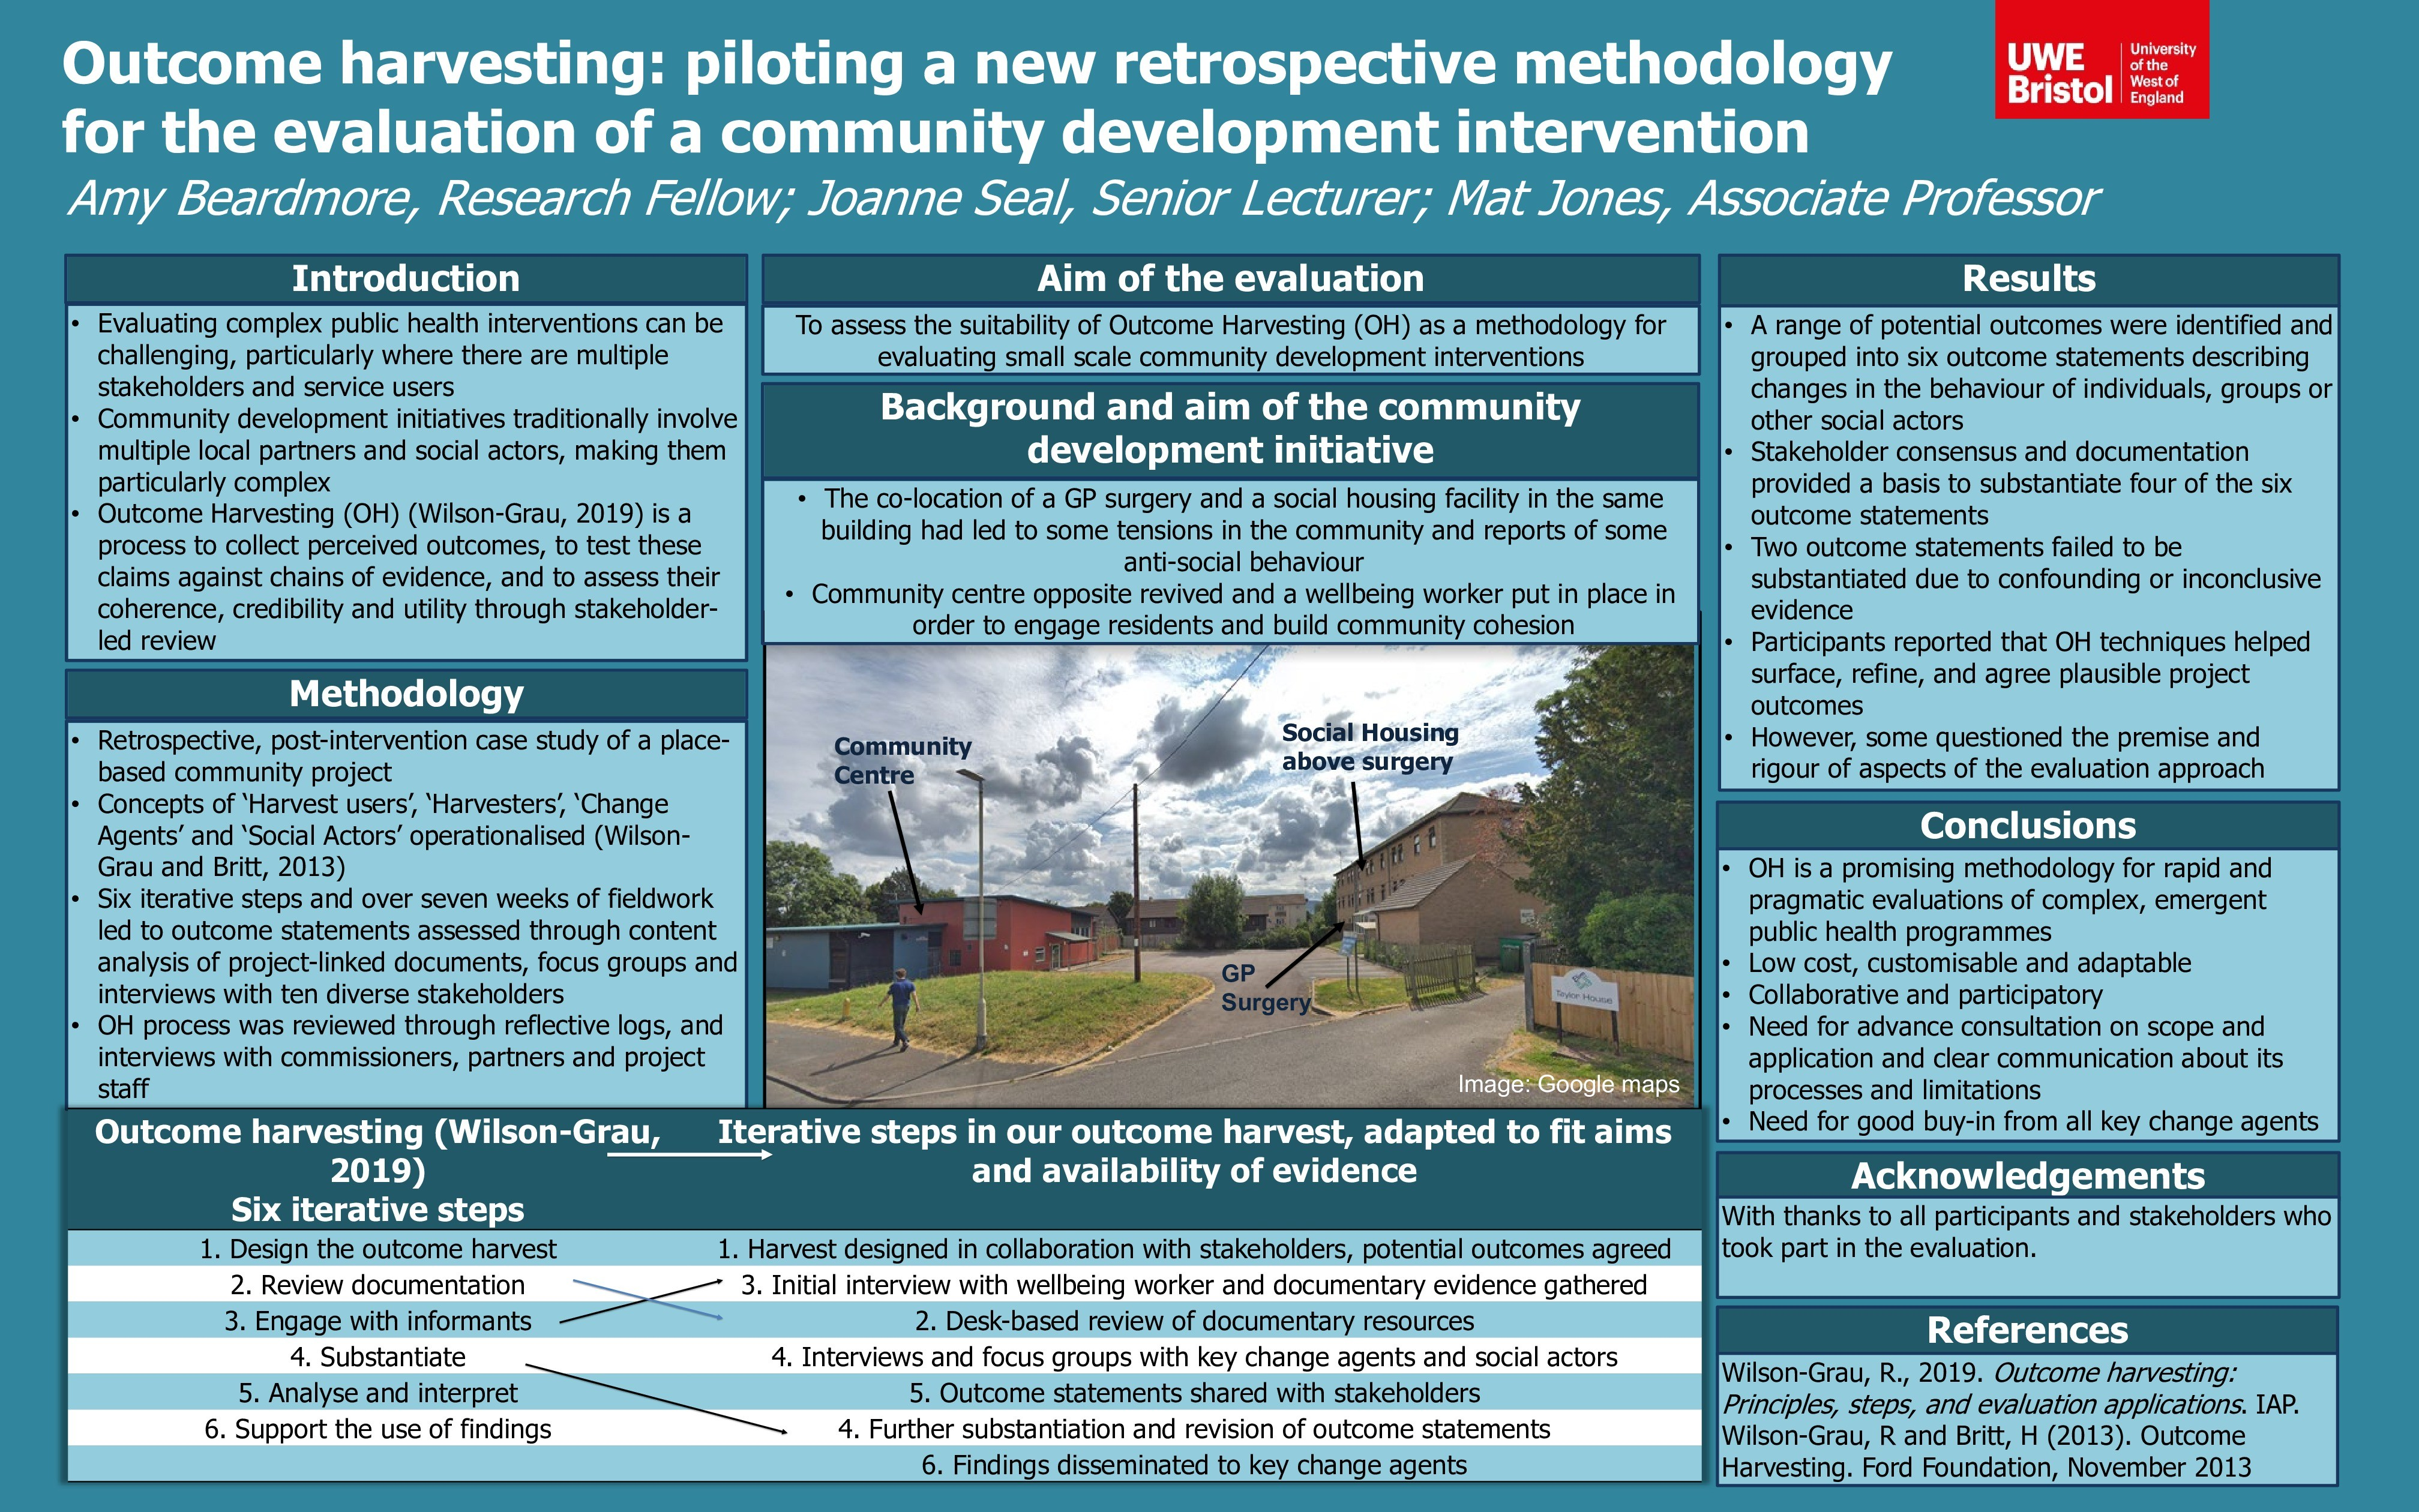 Outcome harvesting: Piloting a new retrospective methodology for the evaluation of a community development intervention Thumbnail